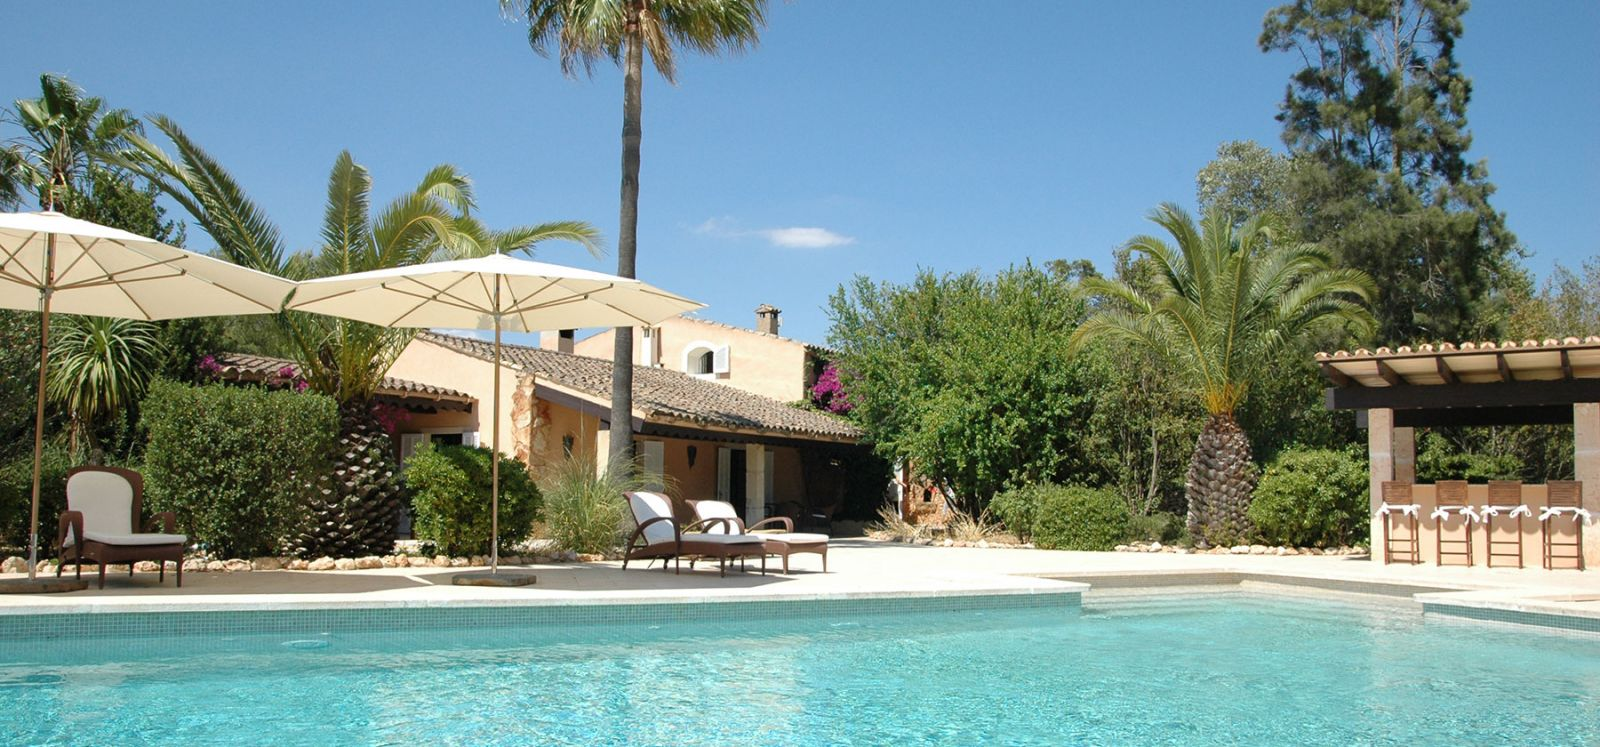 We offer exclusive dream villas and villas in Mallorca and Ibiza